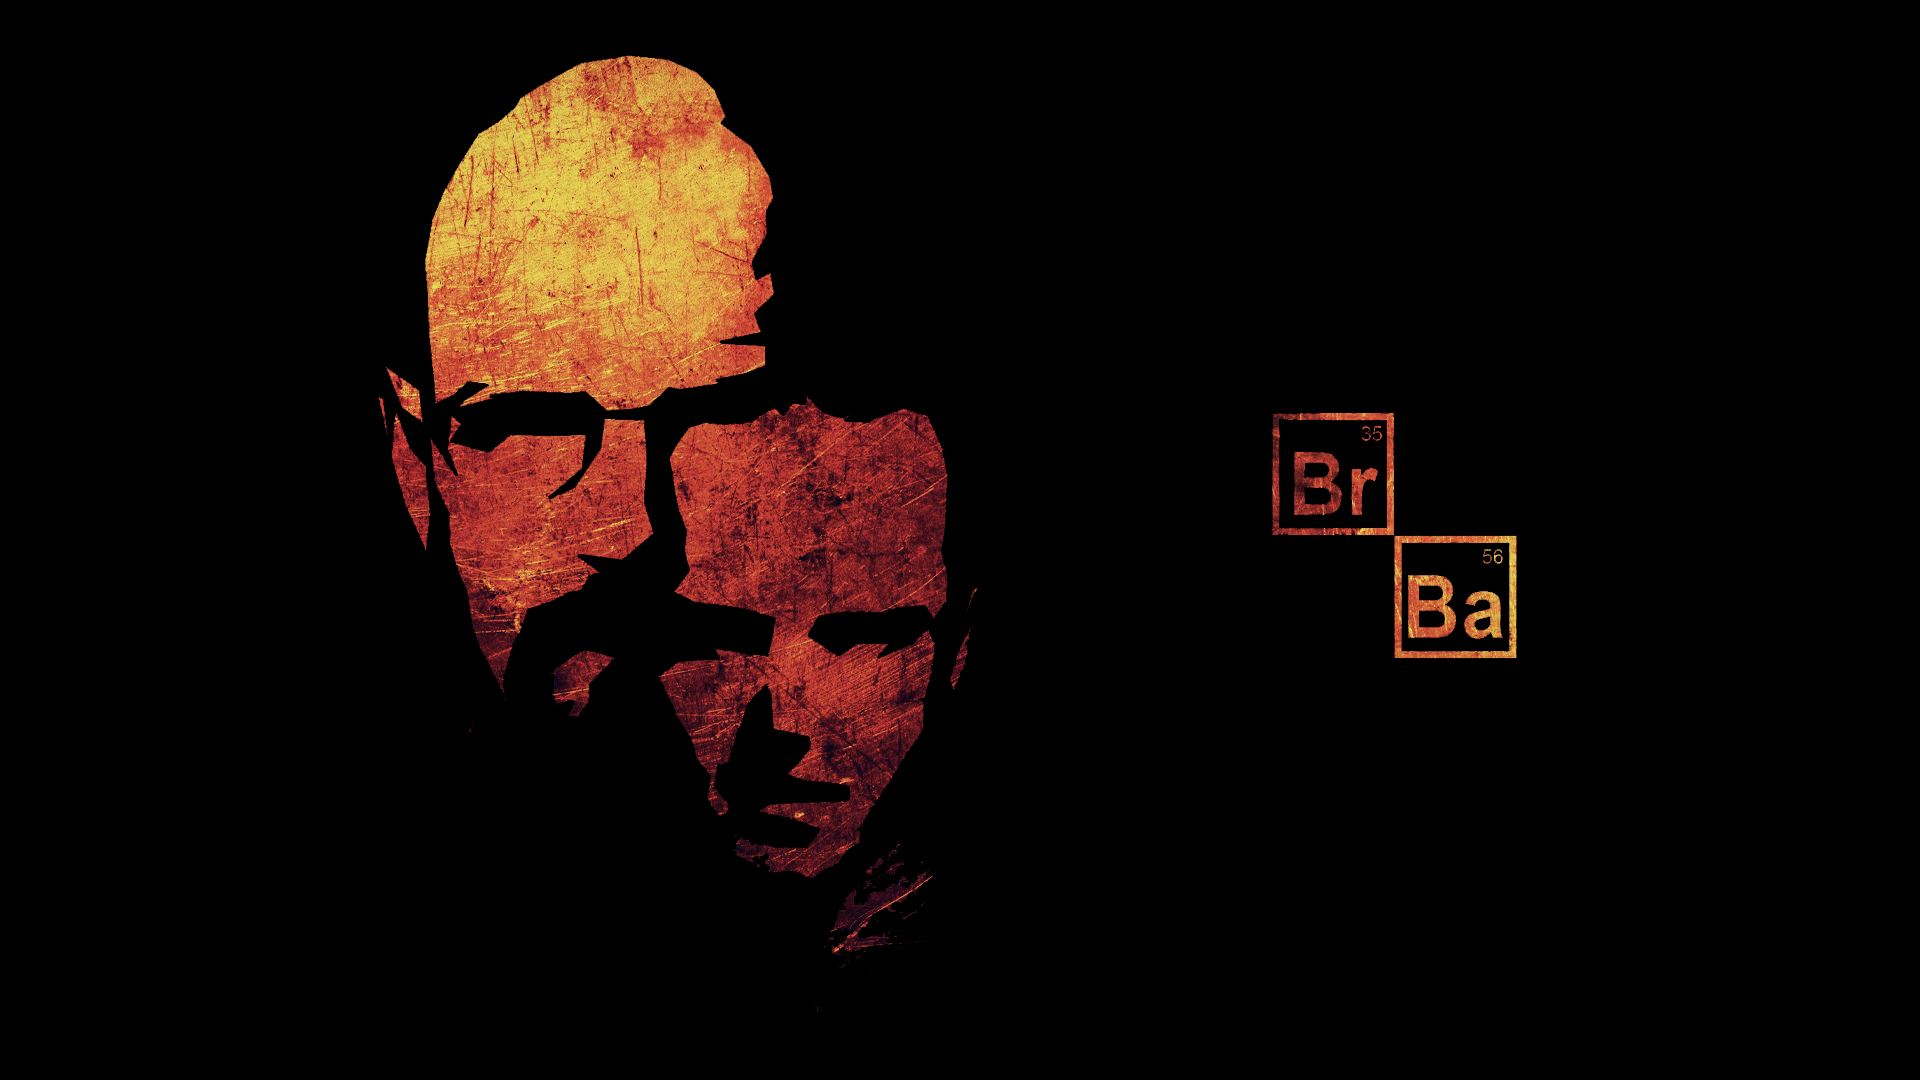 Breaking-Bad-Flat-http-www-fullhdwpp-com-movies-breaking-bad-flat-wallpaper-wpc9003161